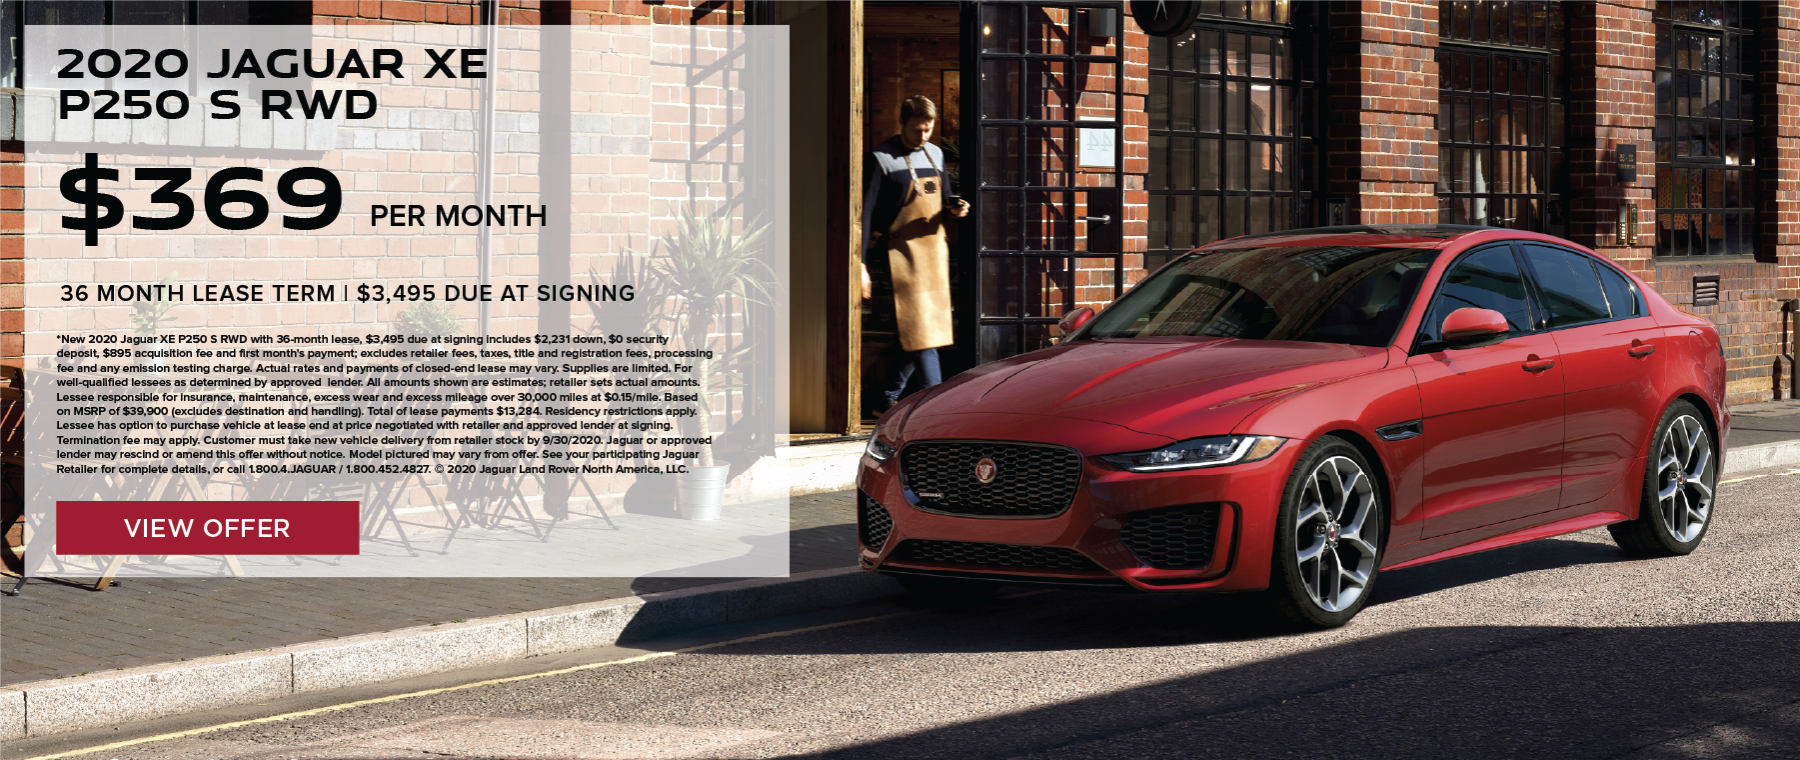 2020 JAGUAR XE P250 S RWD. $369 PER MONTH. 36 MONTH LEASE TERM WITH $3,495 DUE AT SIGNING. $0 SECURITY DEPOSIT. 10,000 MILES PER YEAR. EXCLUDES RETAILER FEES, TAXES, TITLE AND REGISTRATION FEES, PROCESSING FEE AND ANY EMISSION TESTING CHARGE. OFFER ENDS 9/30/2020.